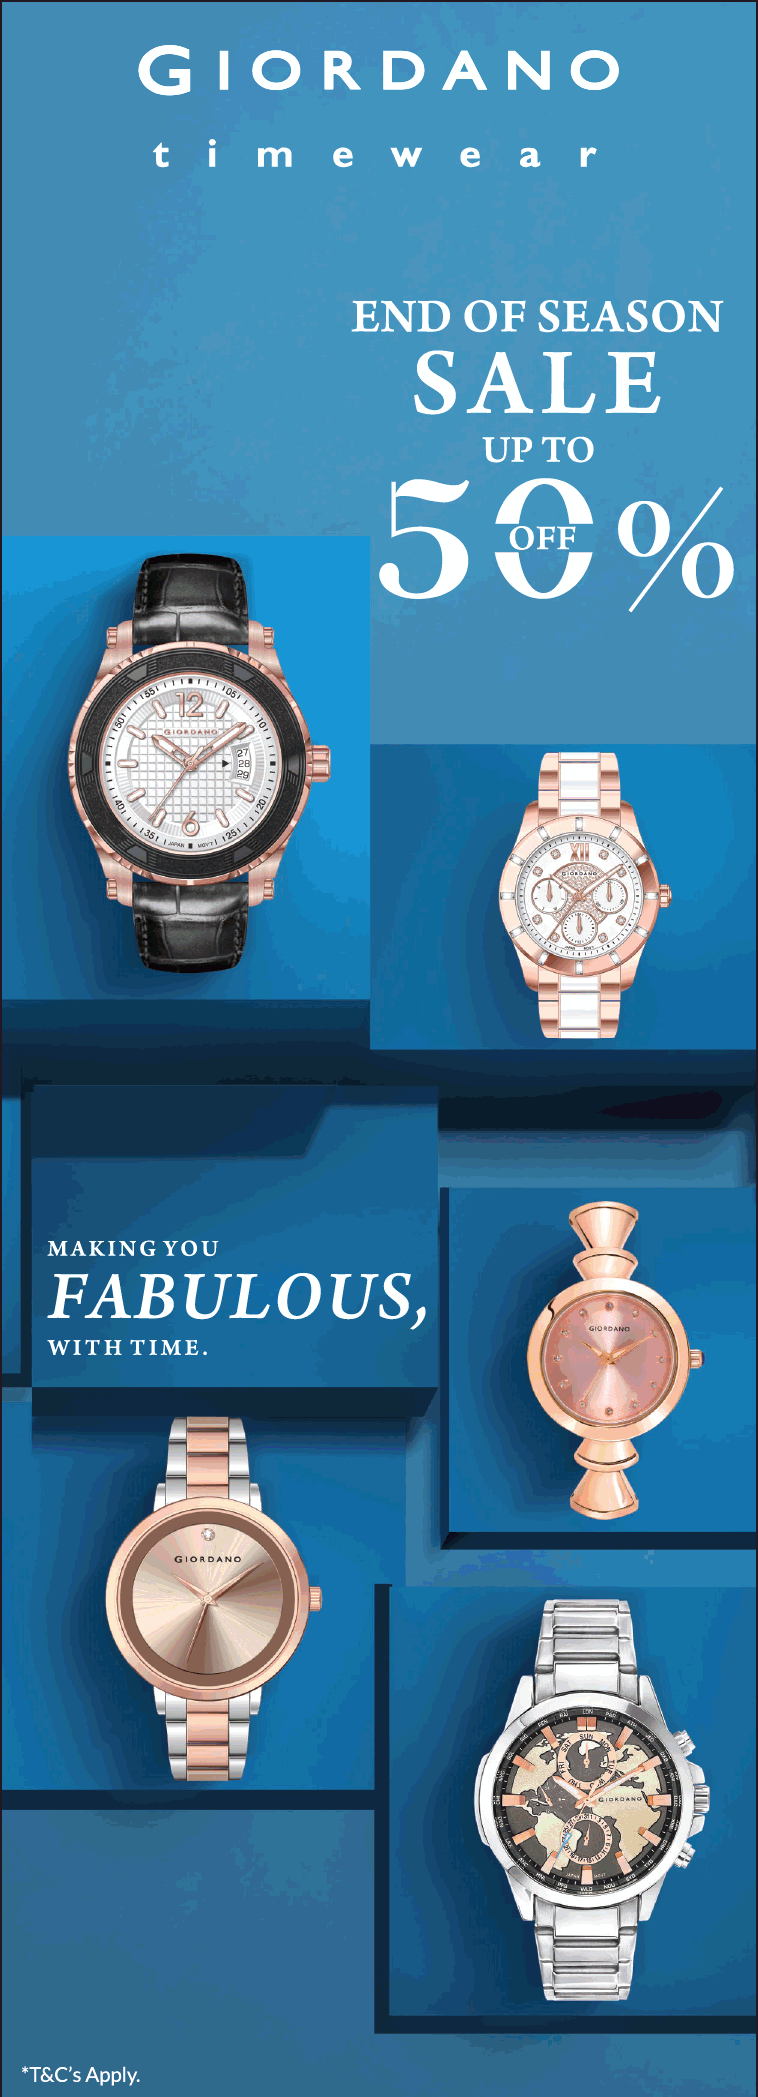 giordano-timewear-end-of-season-sale-50%-off-ad-bombay-times-25-01-2019.png